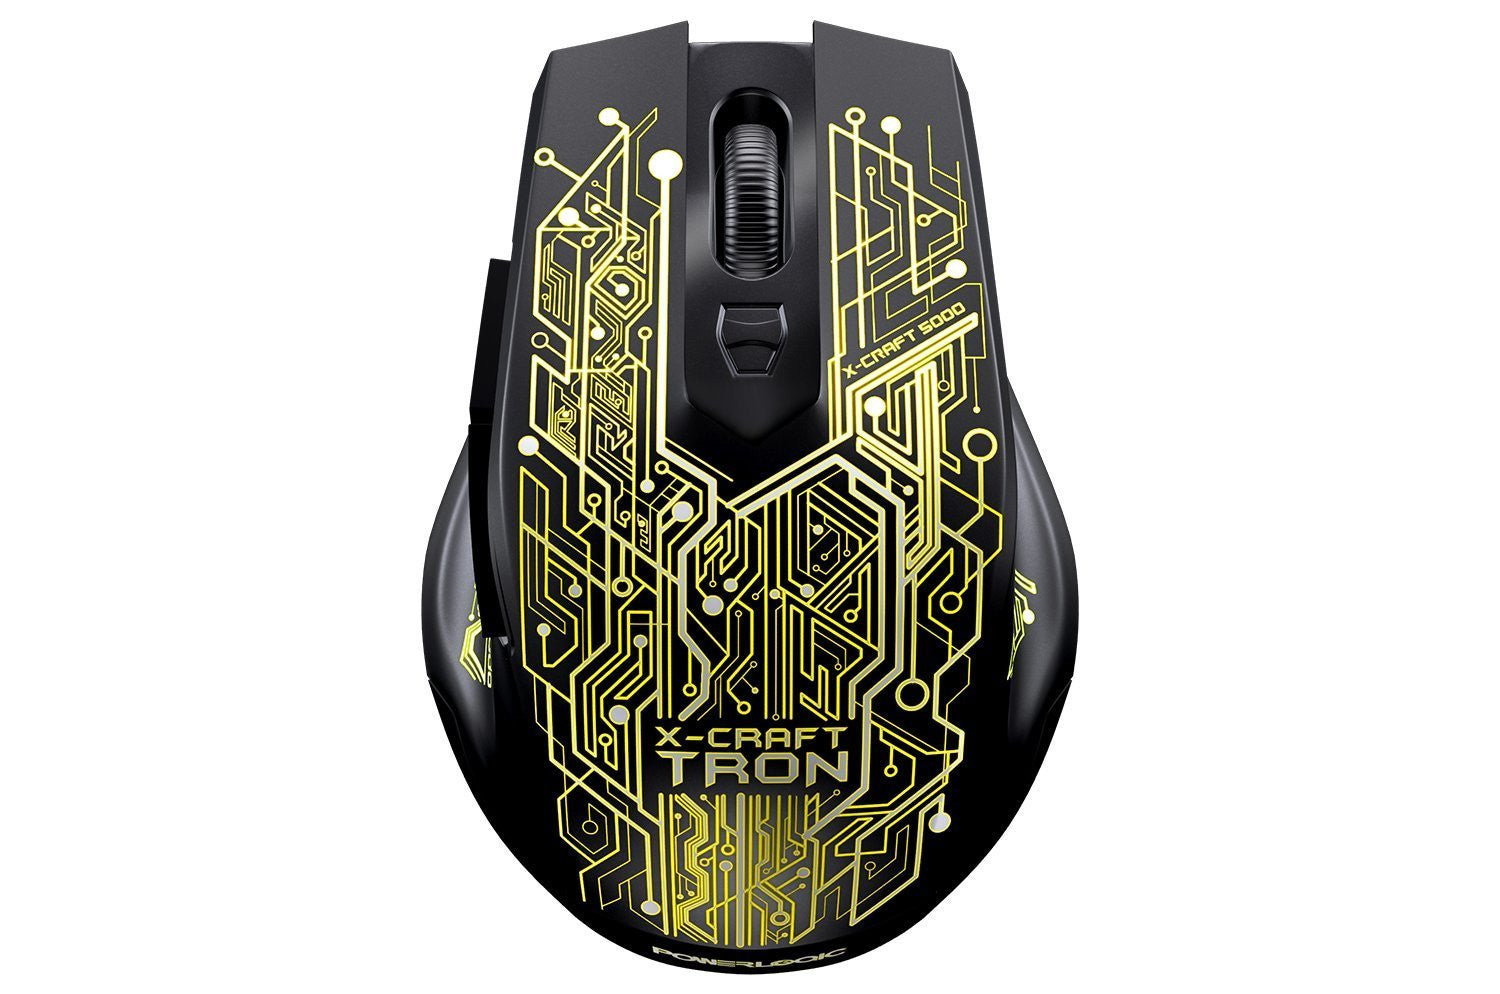 X CRAFT TRON 5000 WINDOWS 8 DRIVER DOWNLOAD